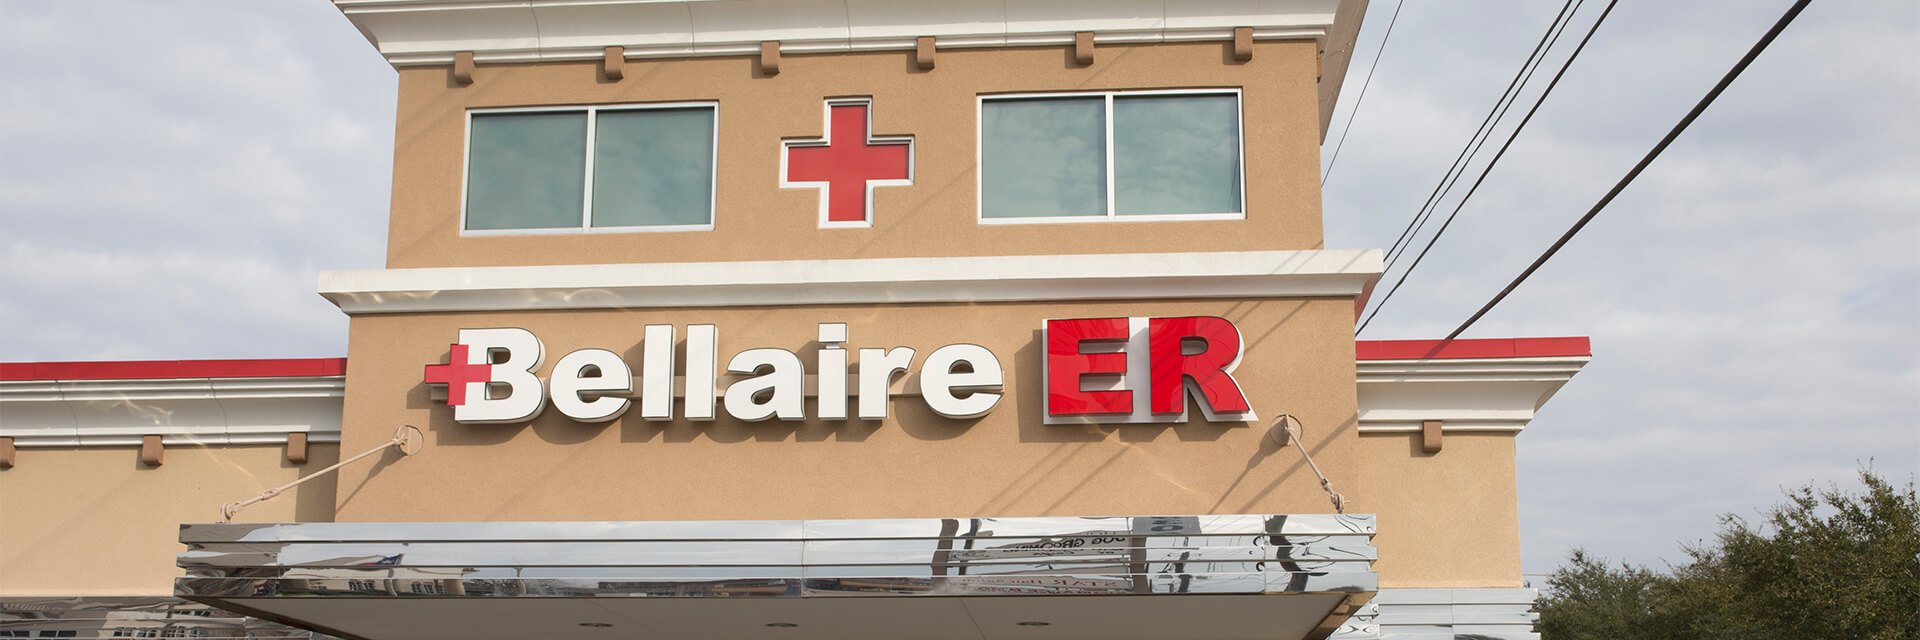 Bellaire ER, Your 24 Hour Emergency Room in Houston